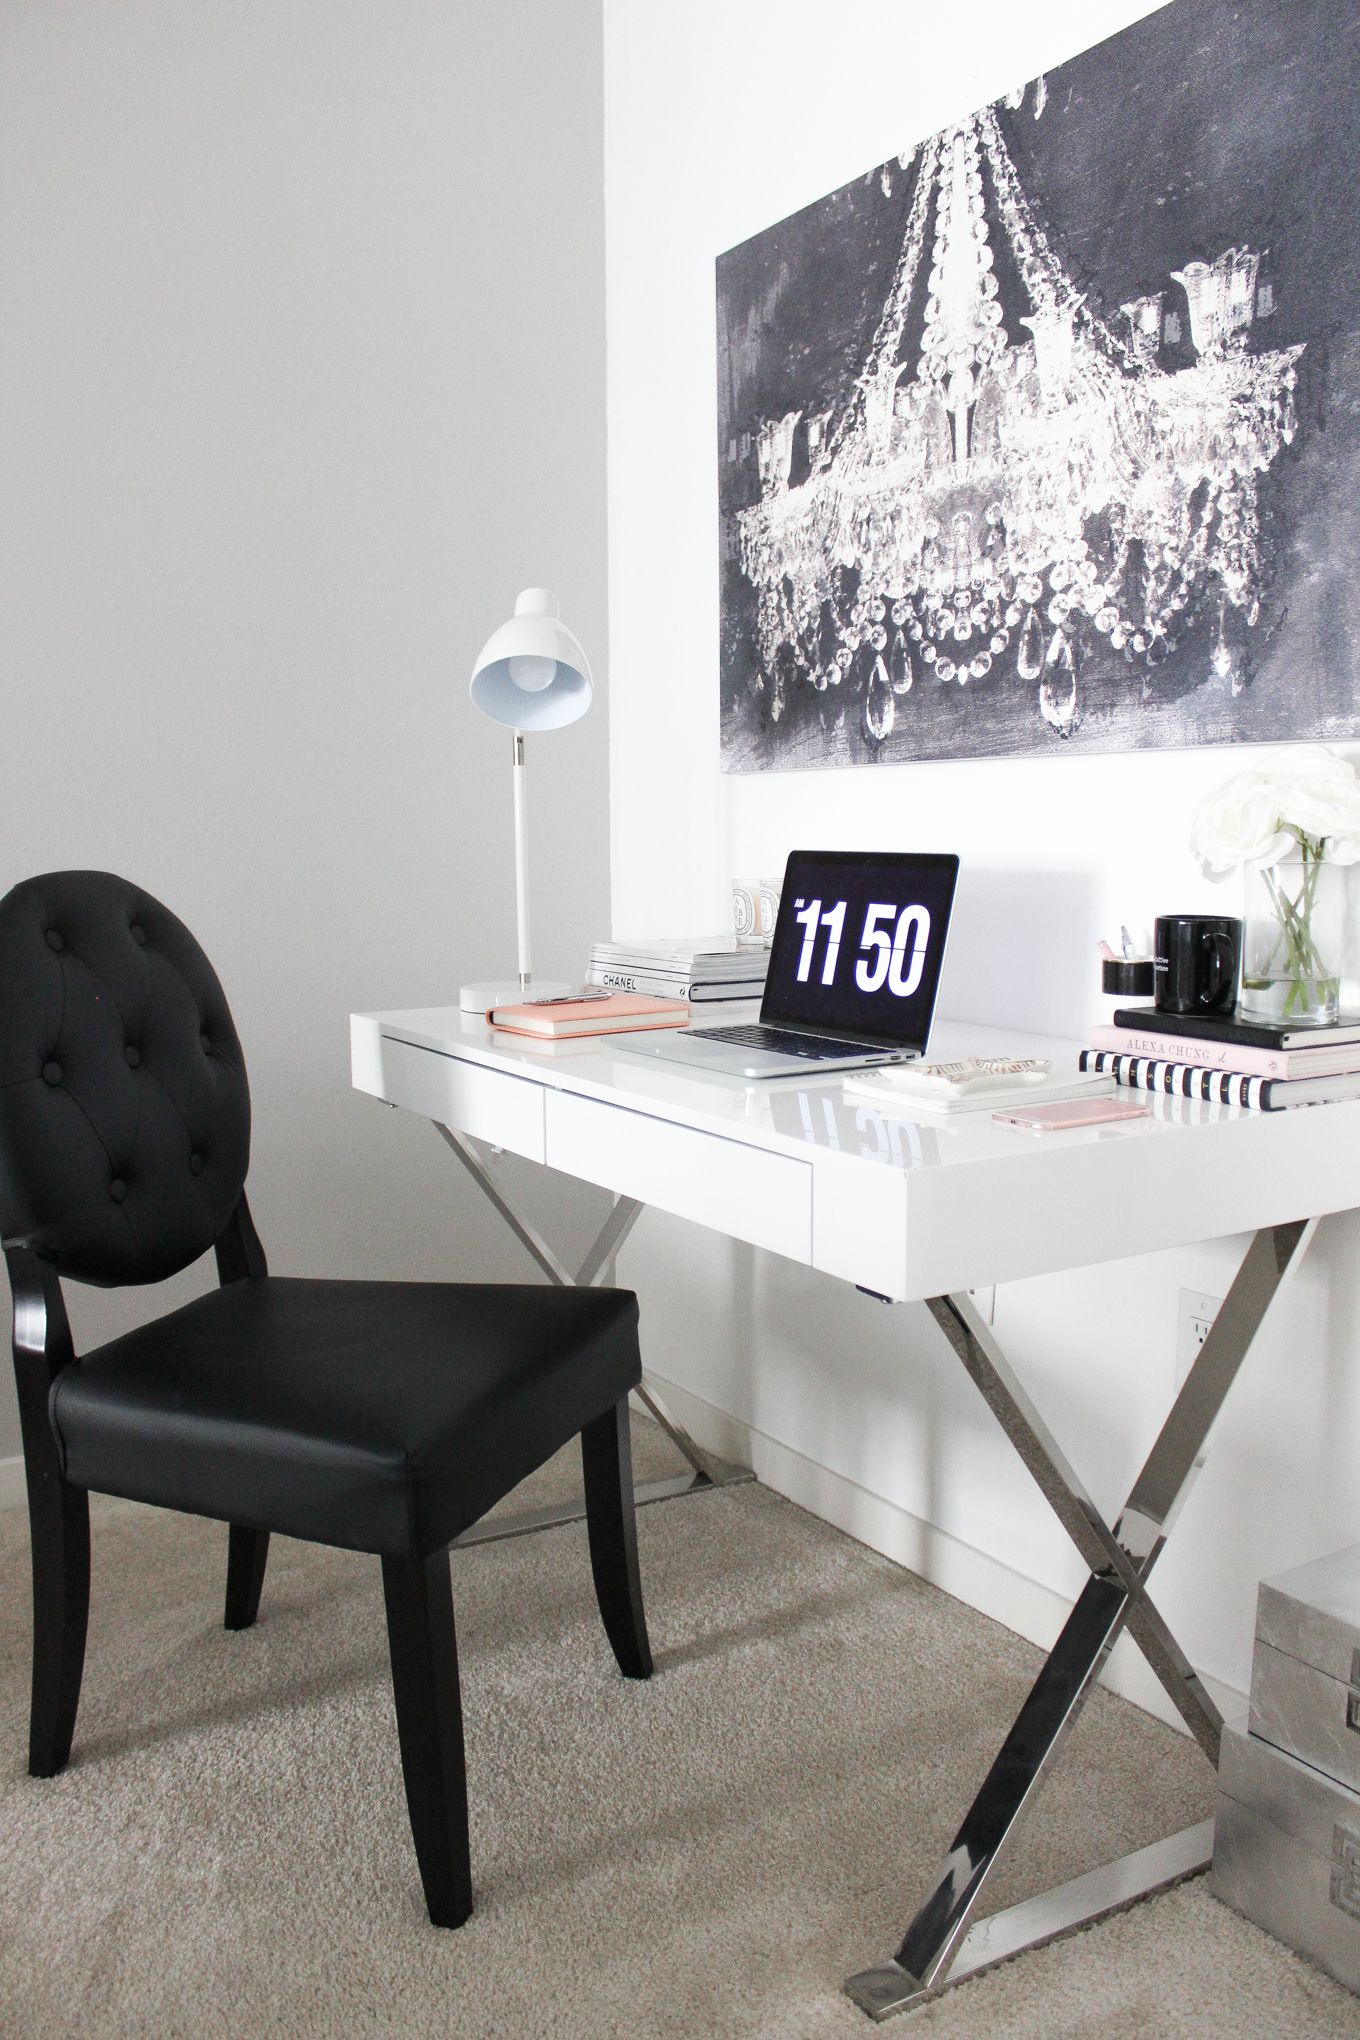 office space decor. Blondie In The City | Office Space Decor, Desk Black And White Decor